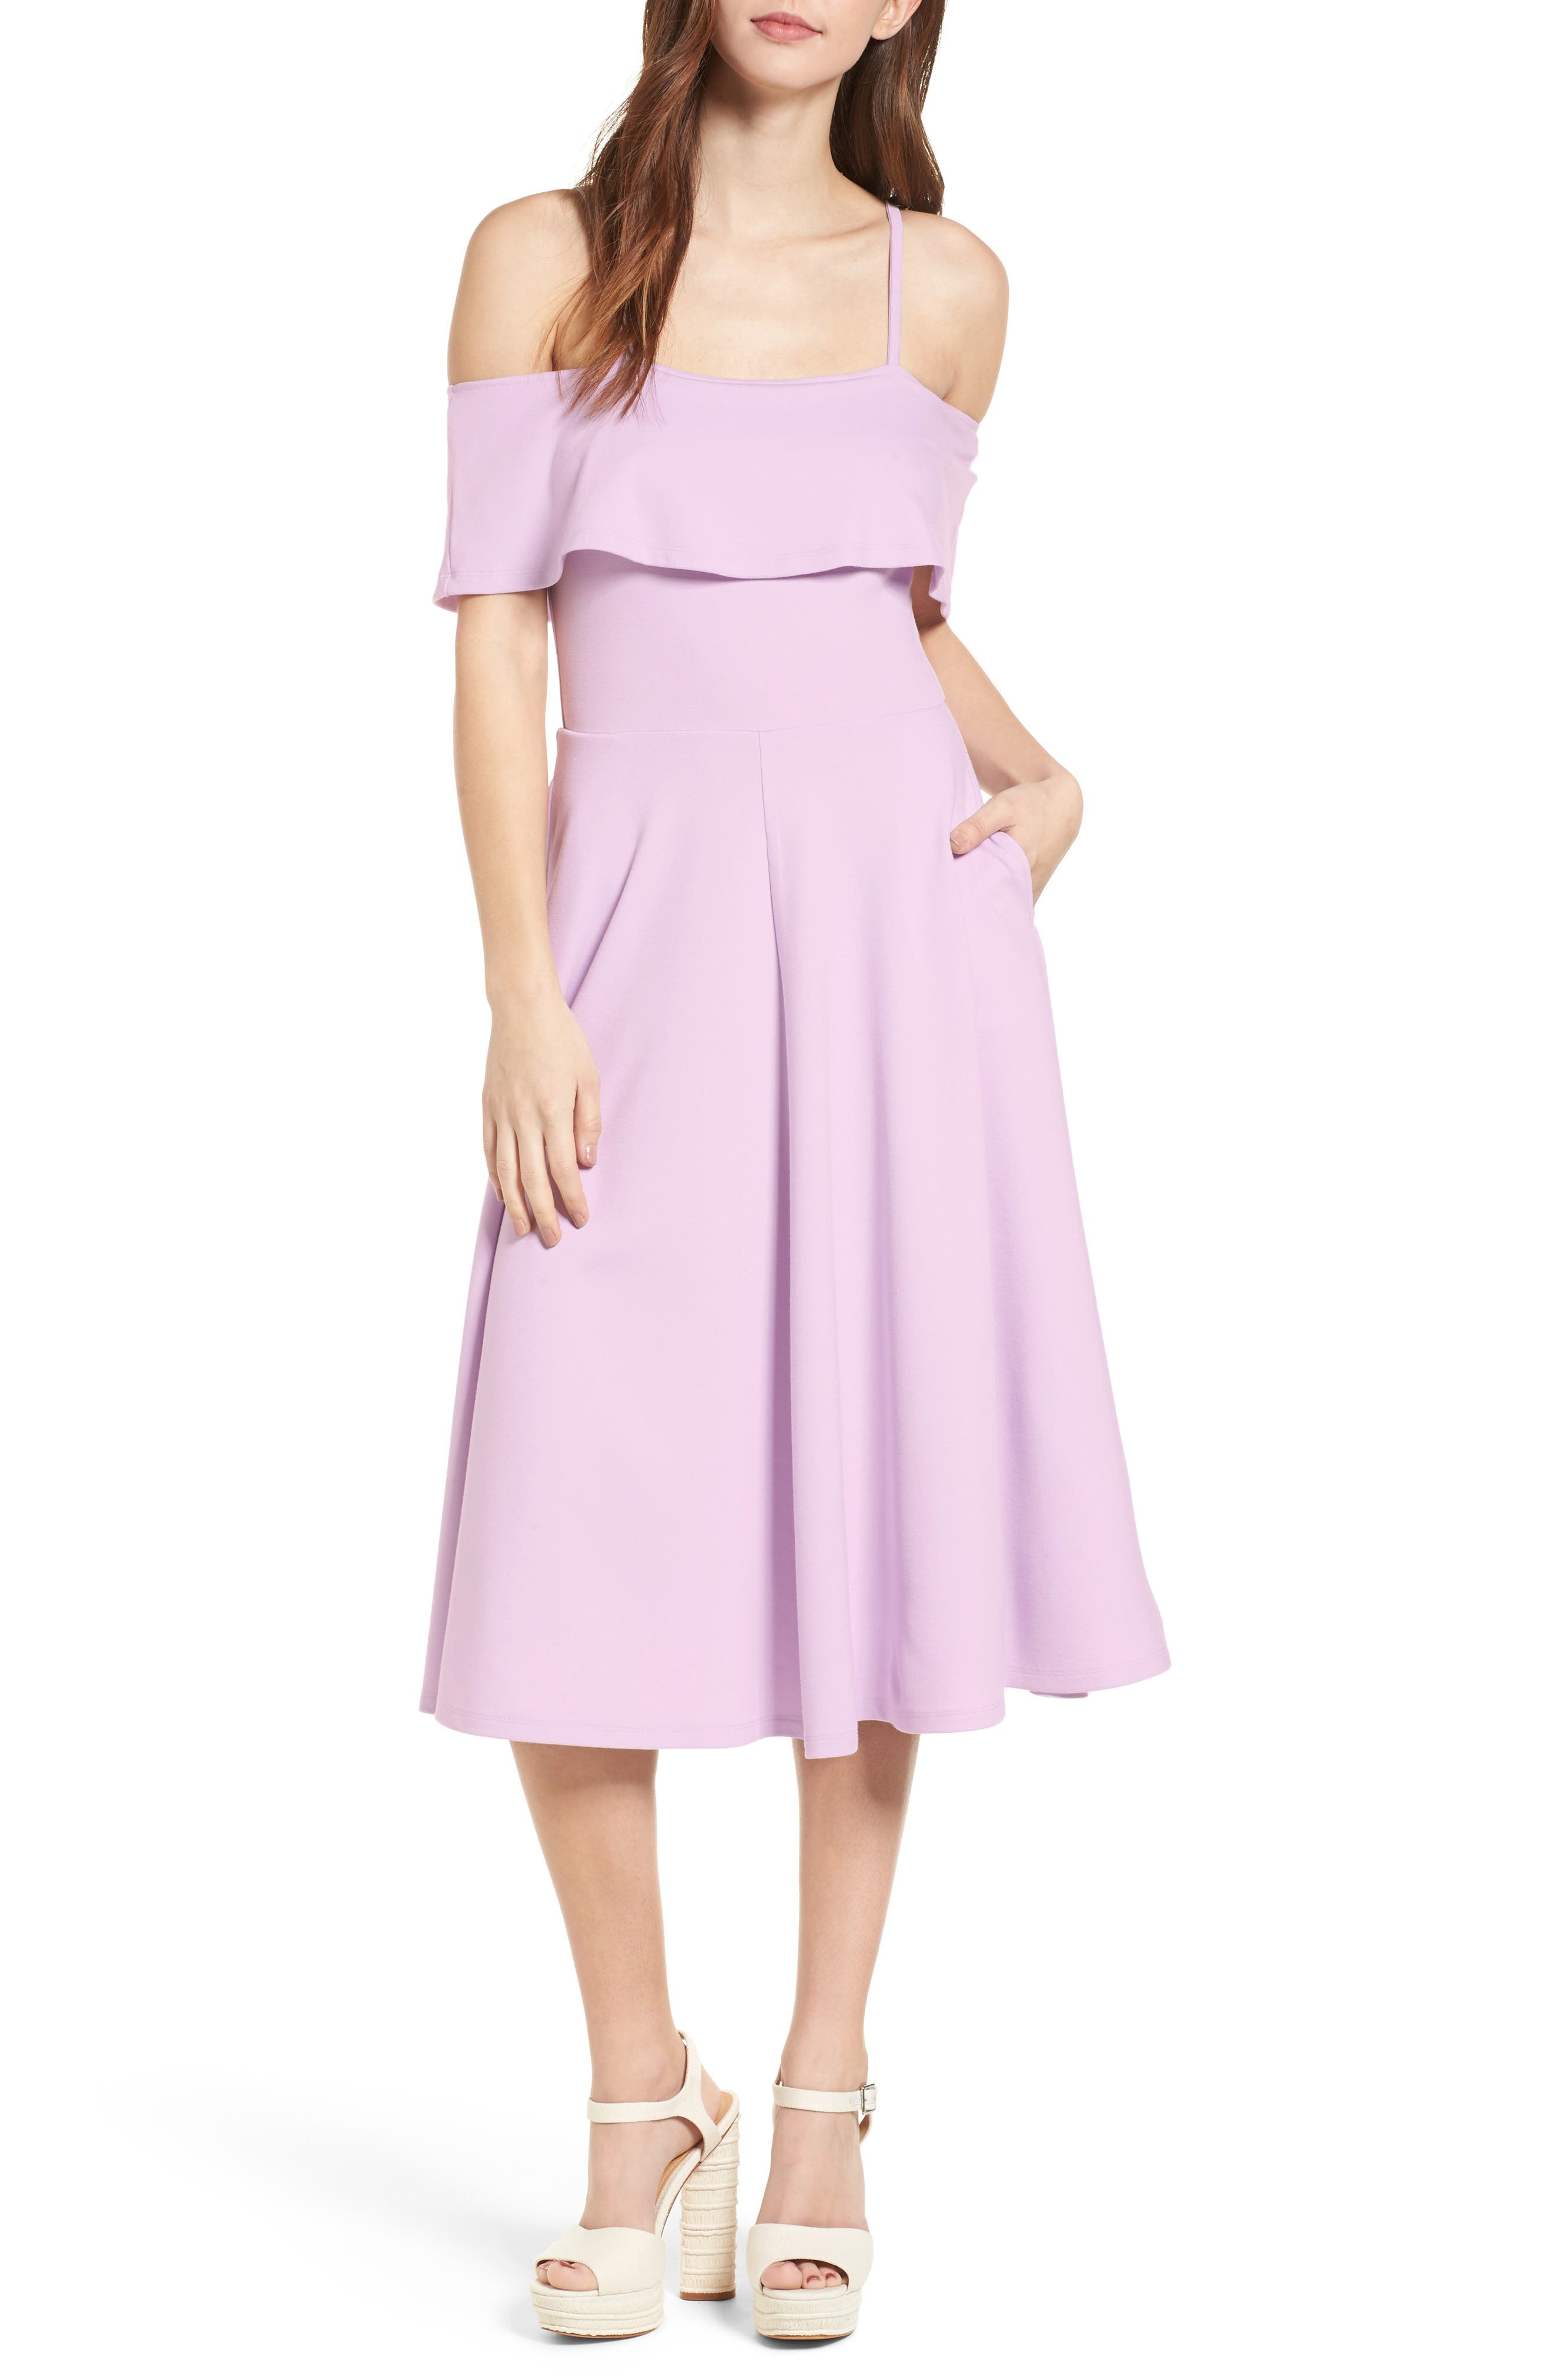 Cold Shoulder Midi Dress,                             Main thumbnail 1, color,                             530